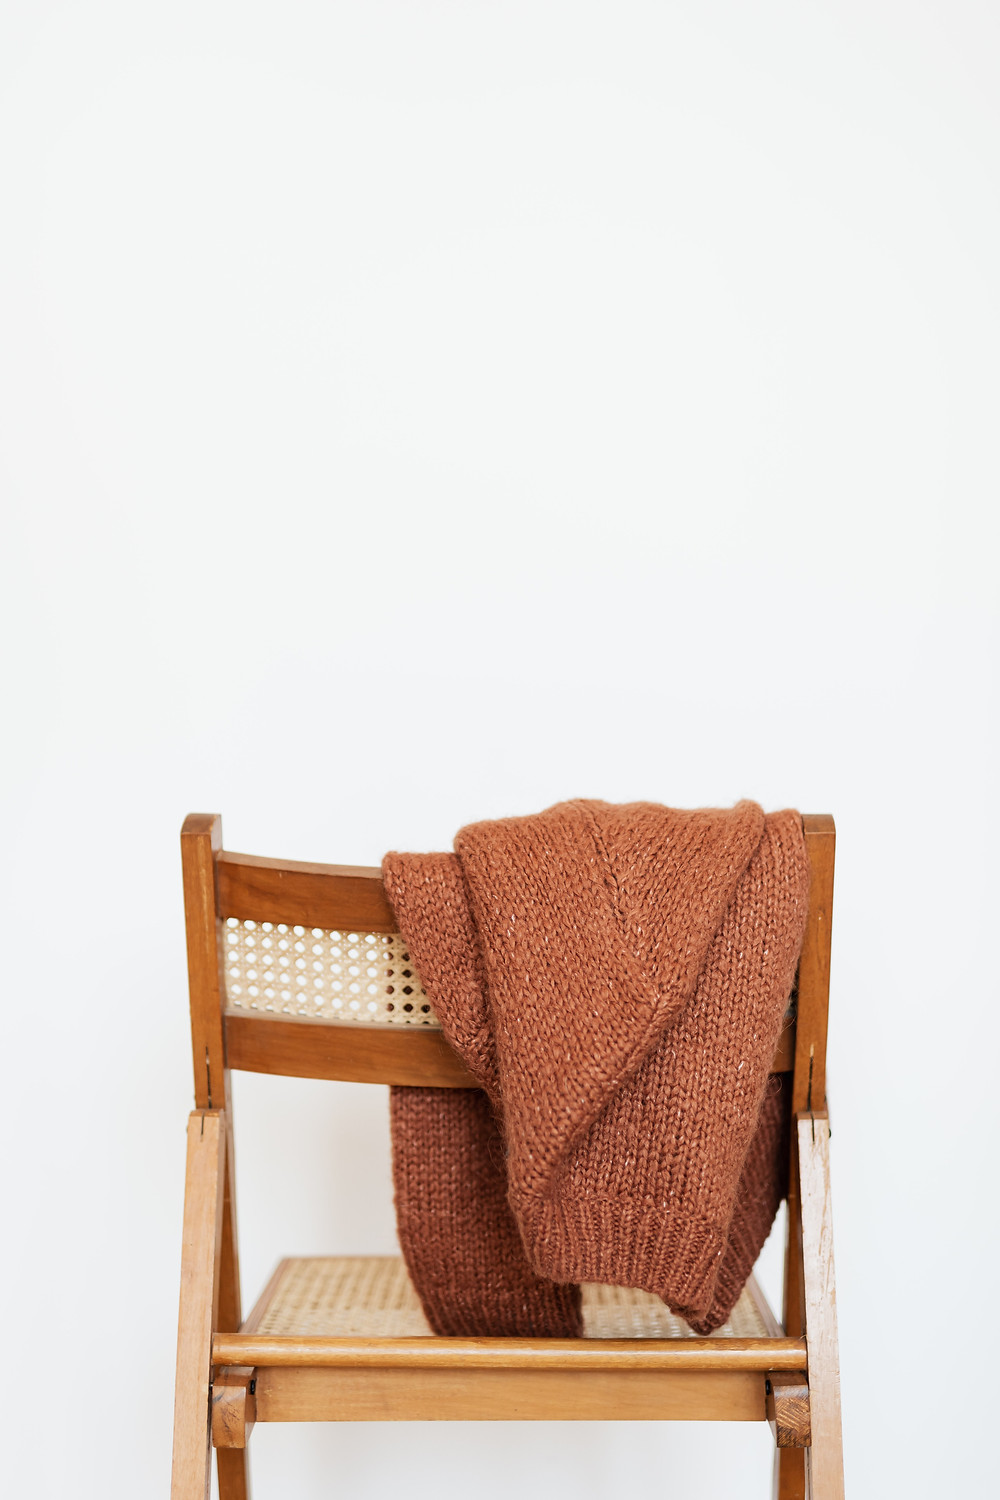 A natural toned knitted sweater hangs on a chair